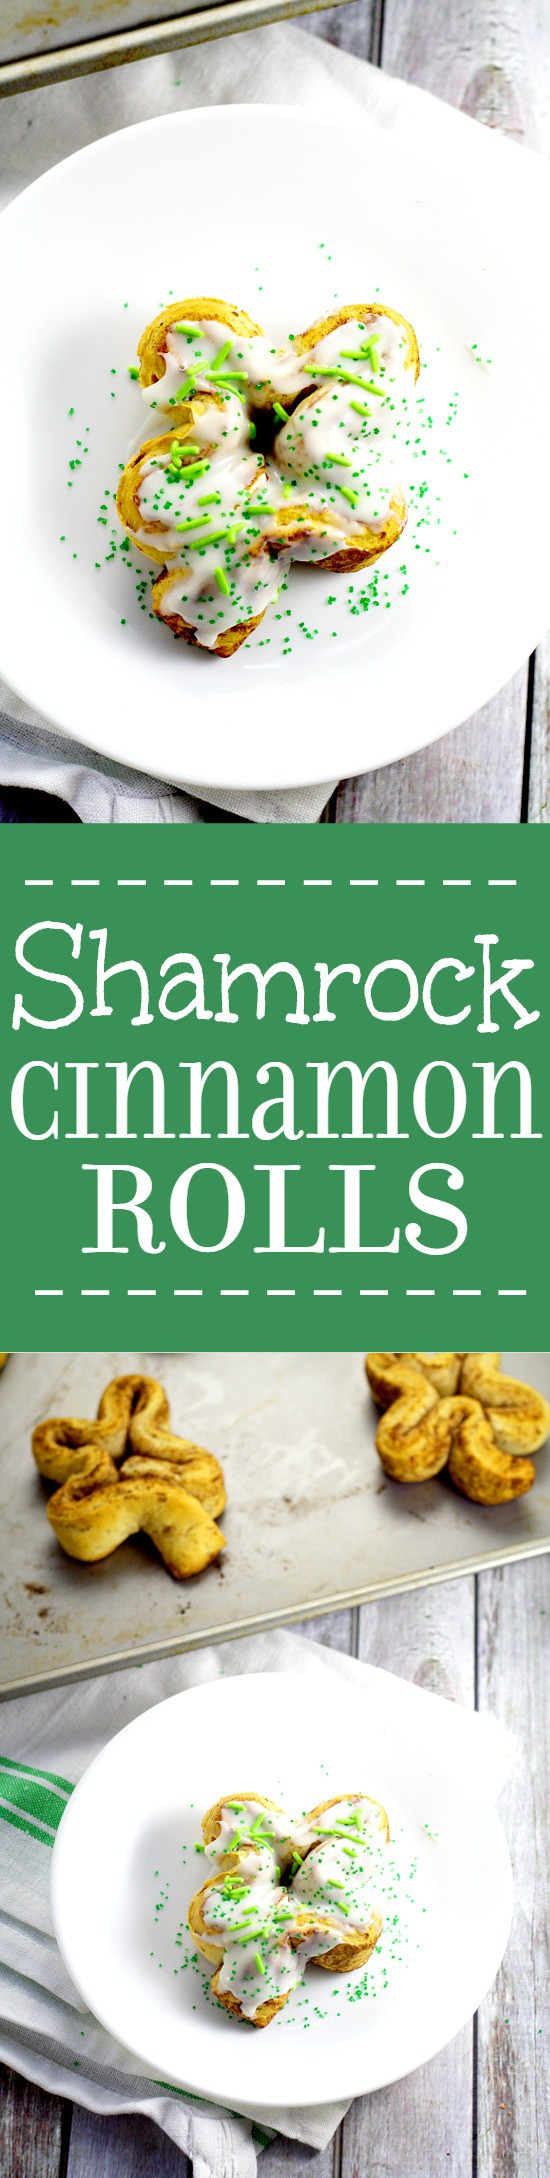 Shamrock Cinnamon Rolls with pretty green sprinkles.Adorable, but totally easy Shamrock Cinnamon Rolls make a festive St Patrick's Day breakfast idea that the kids will love! So cute!